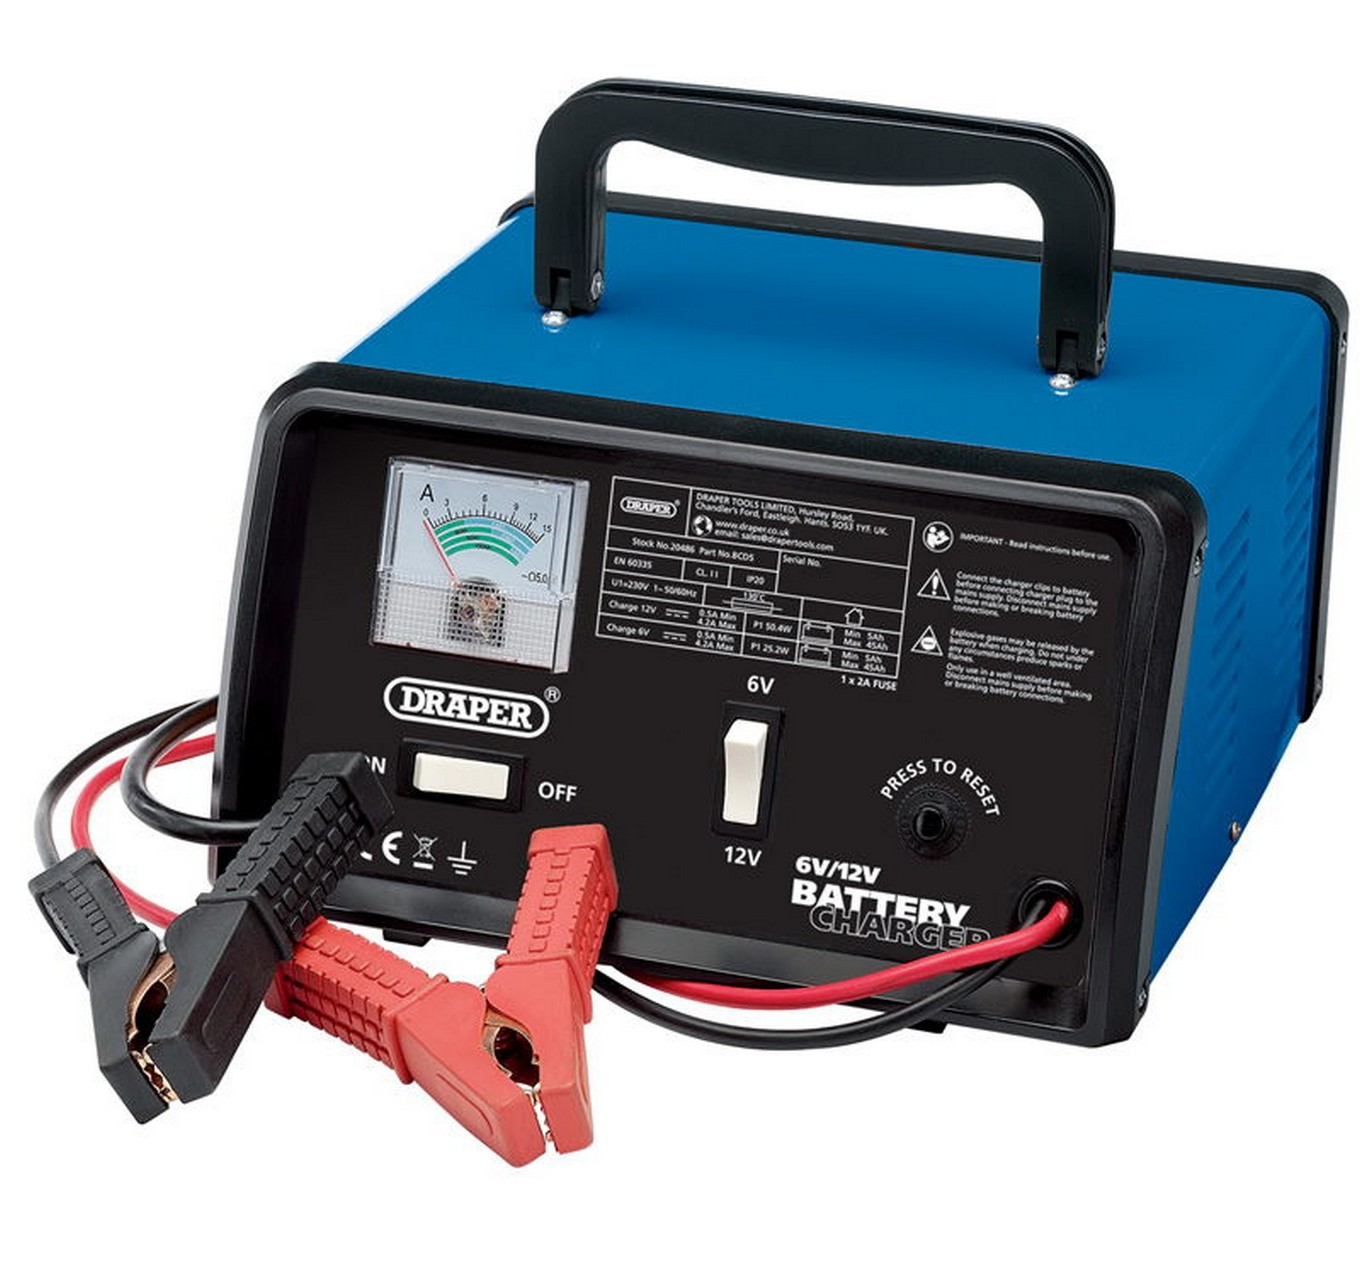 12V 4.2A Battery Charger